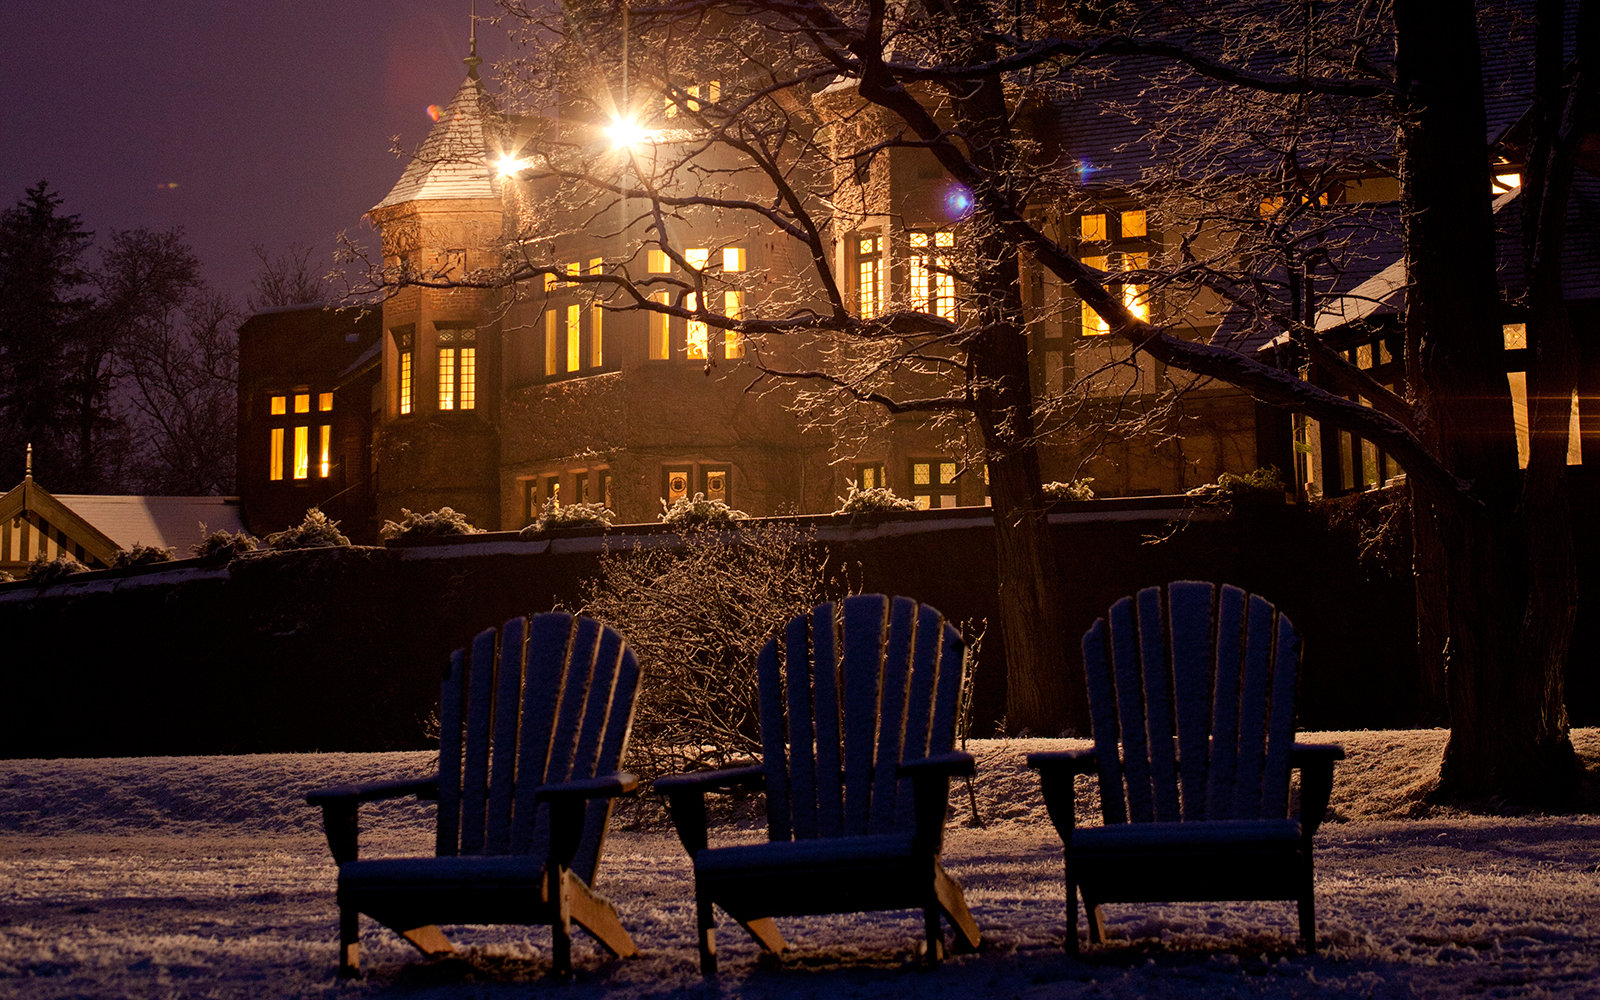 Blantyre Hotel at night in the Berkshires, MA